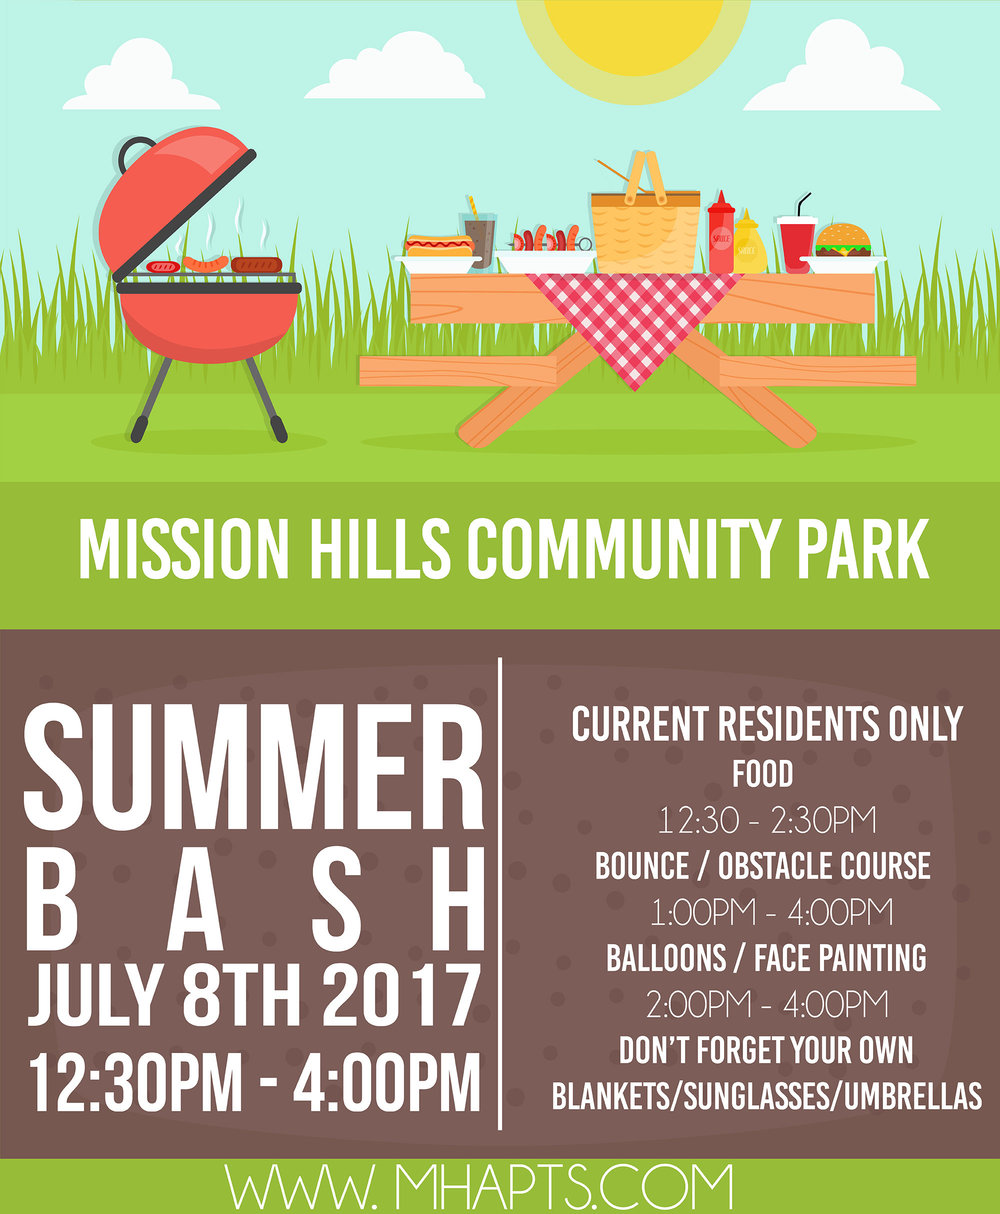 Vancouver-Washington-luxury-apartments-summer-bash-community-party